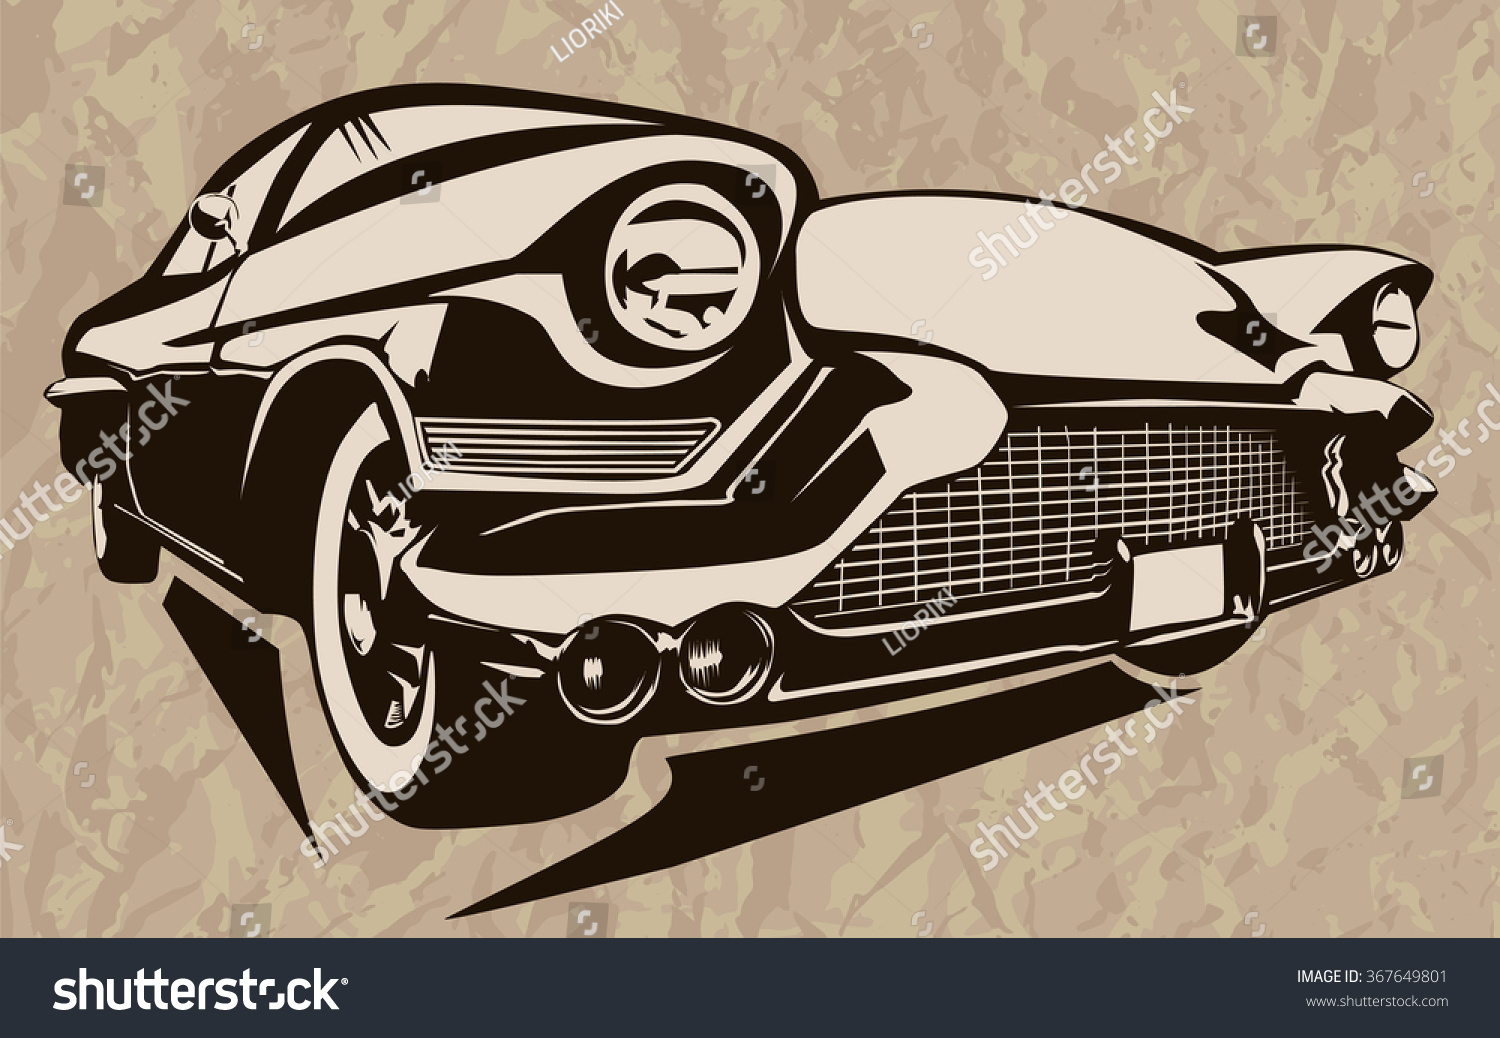 Vintage Muscle Cars Inspired Cartoon Sketch Stock Photo (Photo ...